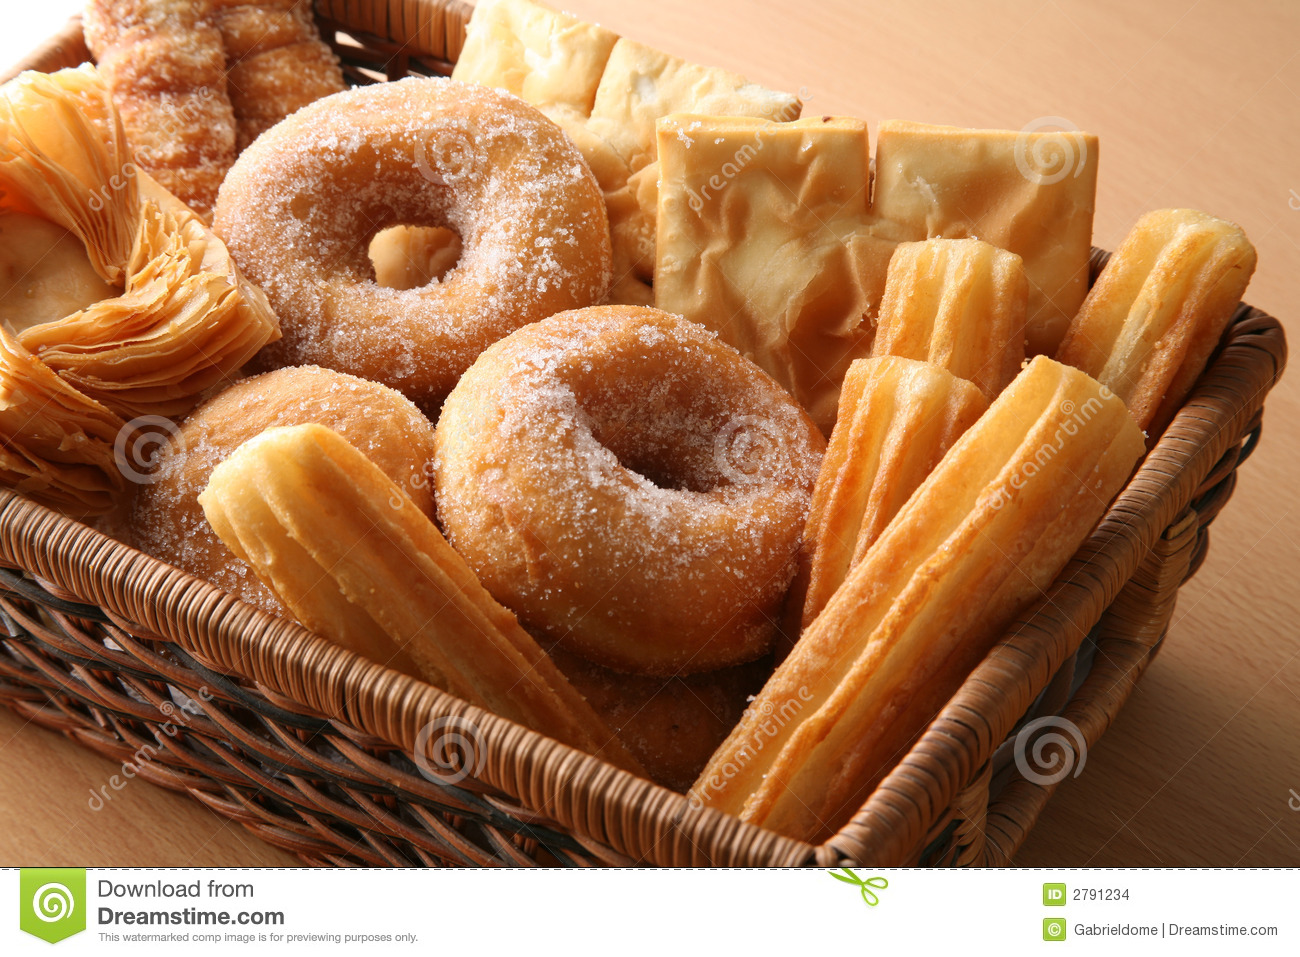 Bakery Wallpaper Hd Bakery On Window Stock Photo Image Of Carbohydrate